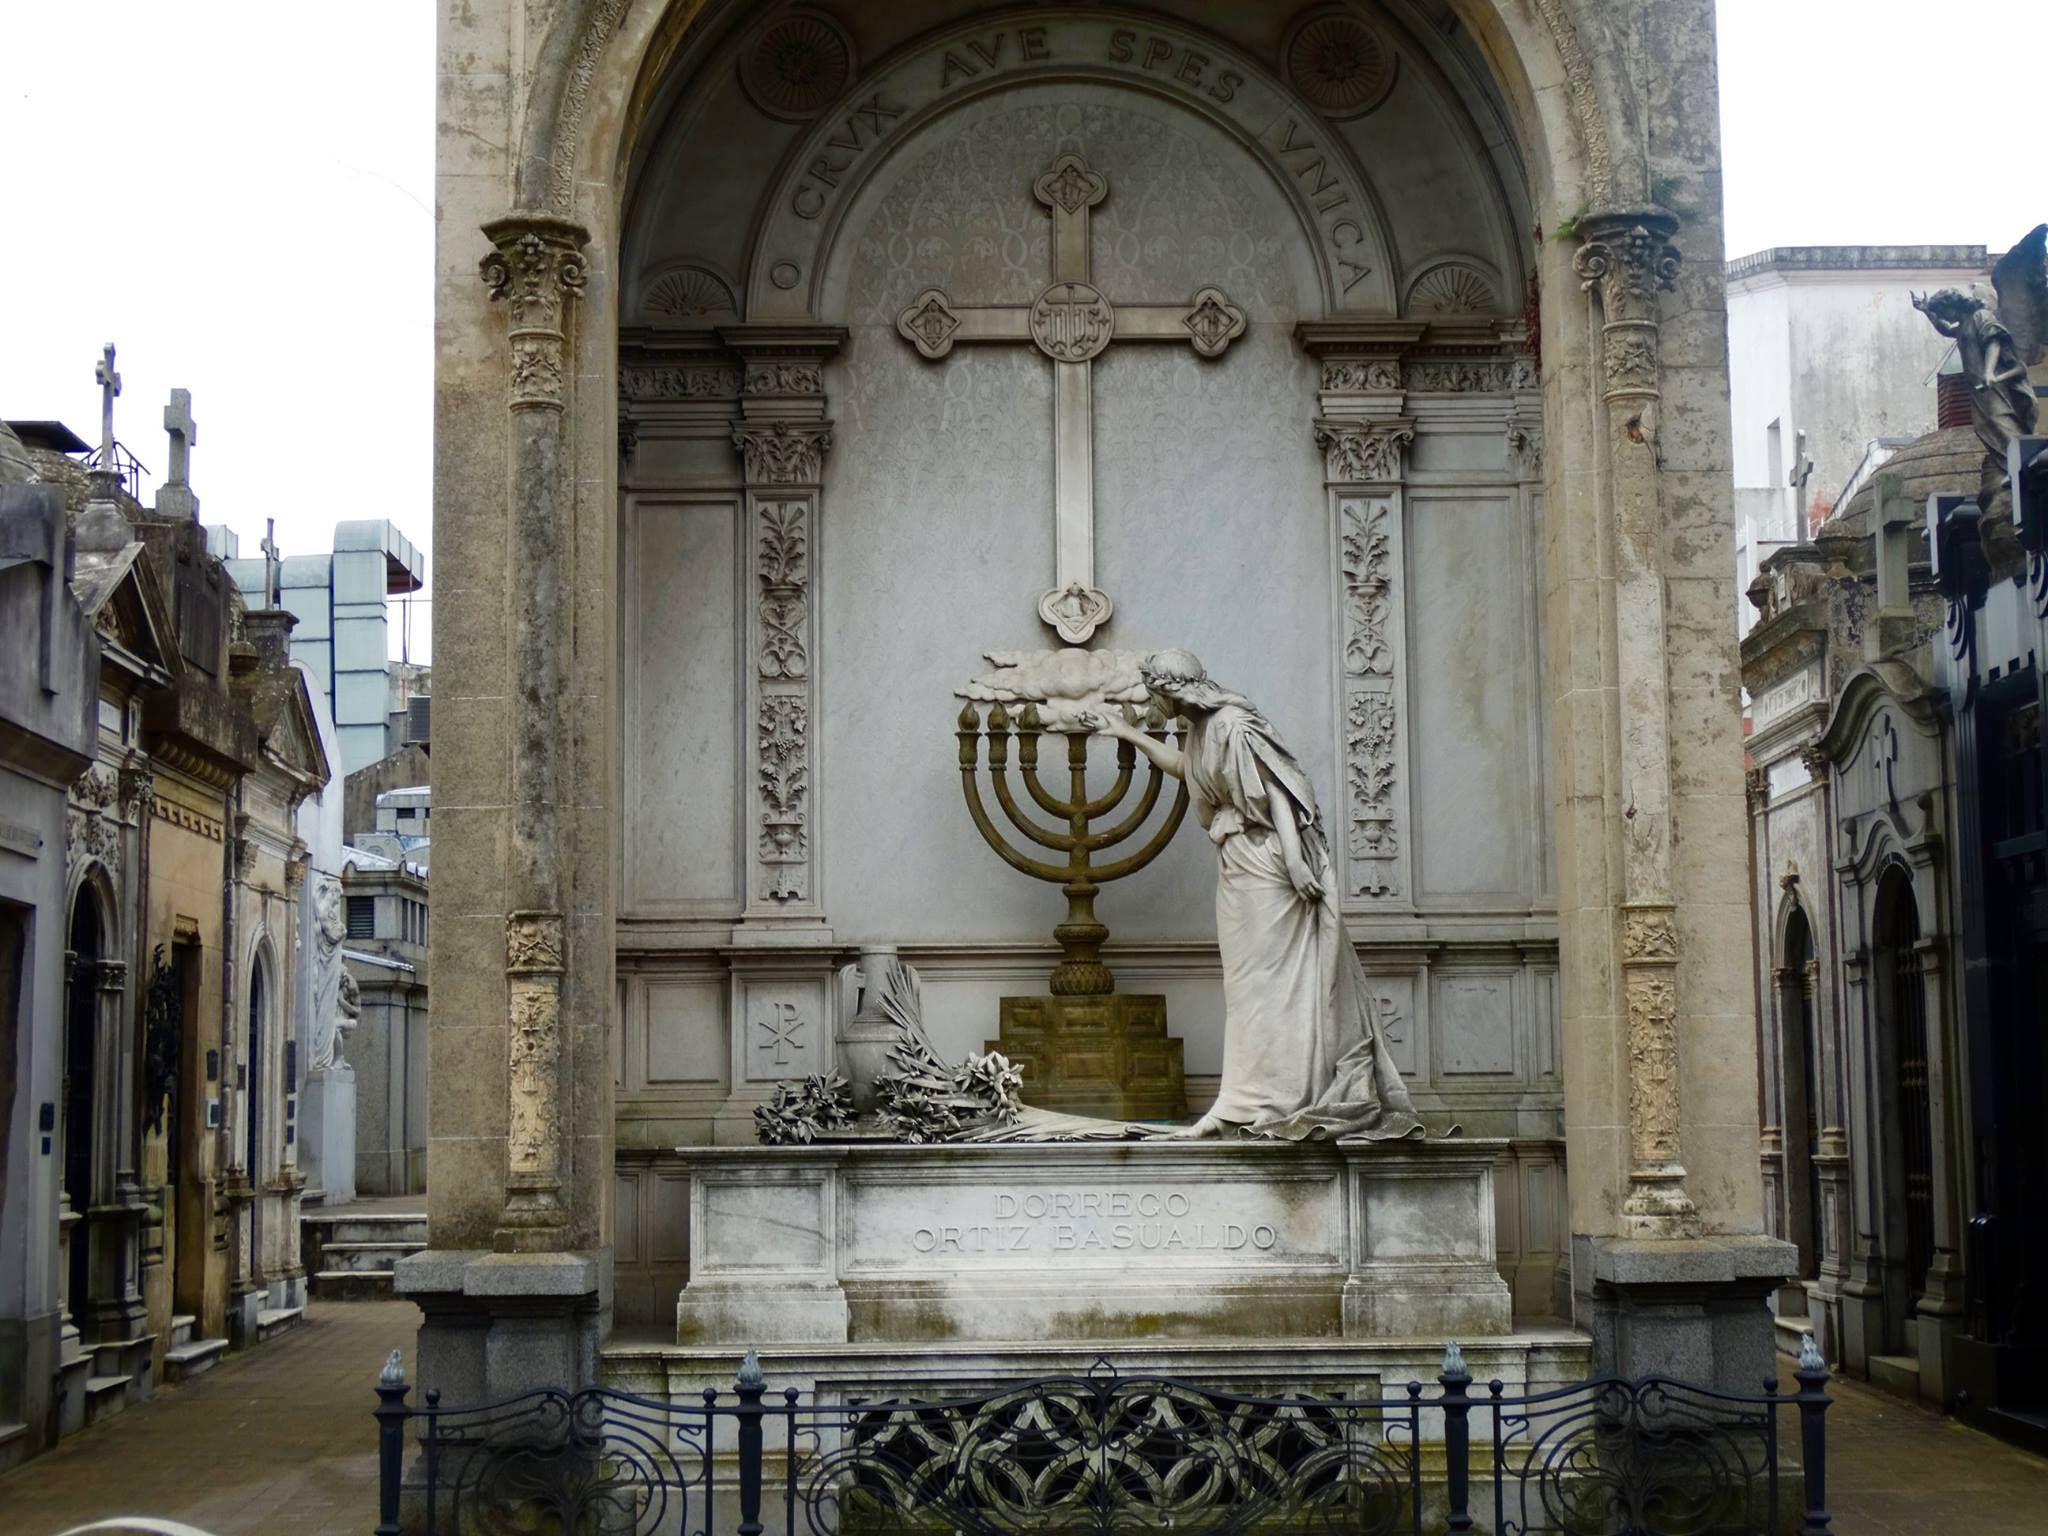 This mausoleum was actually pretty confusing to me. An angel or woman lighting a menorah under a cross?